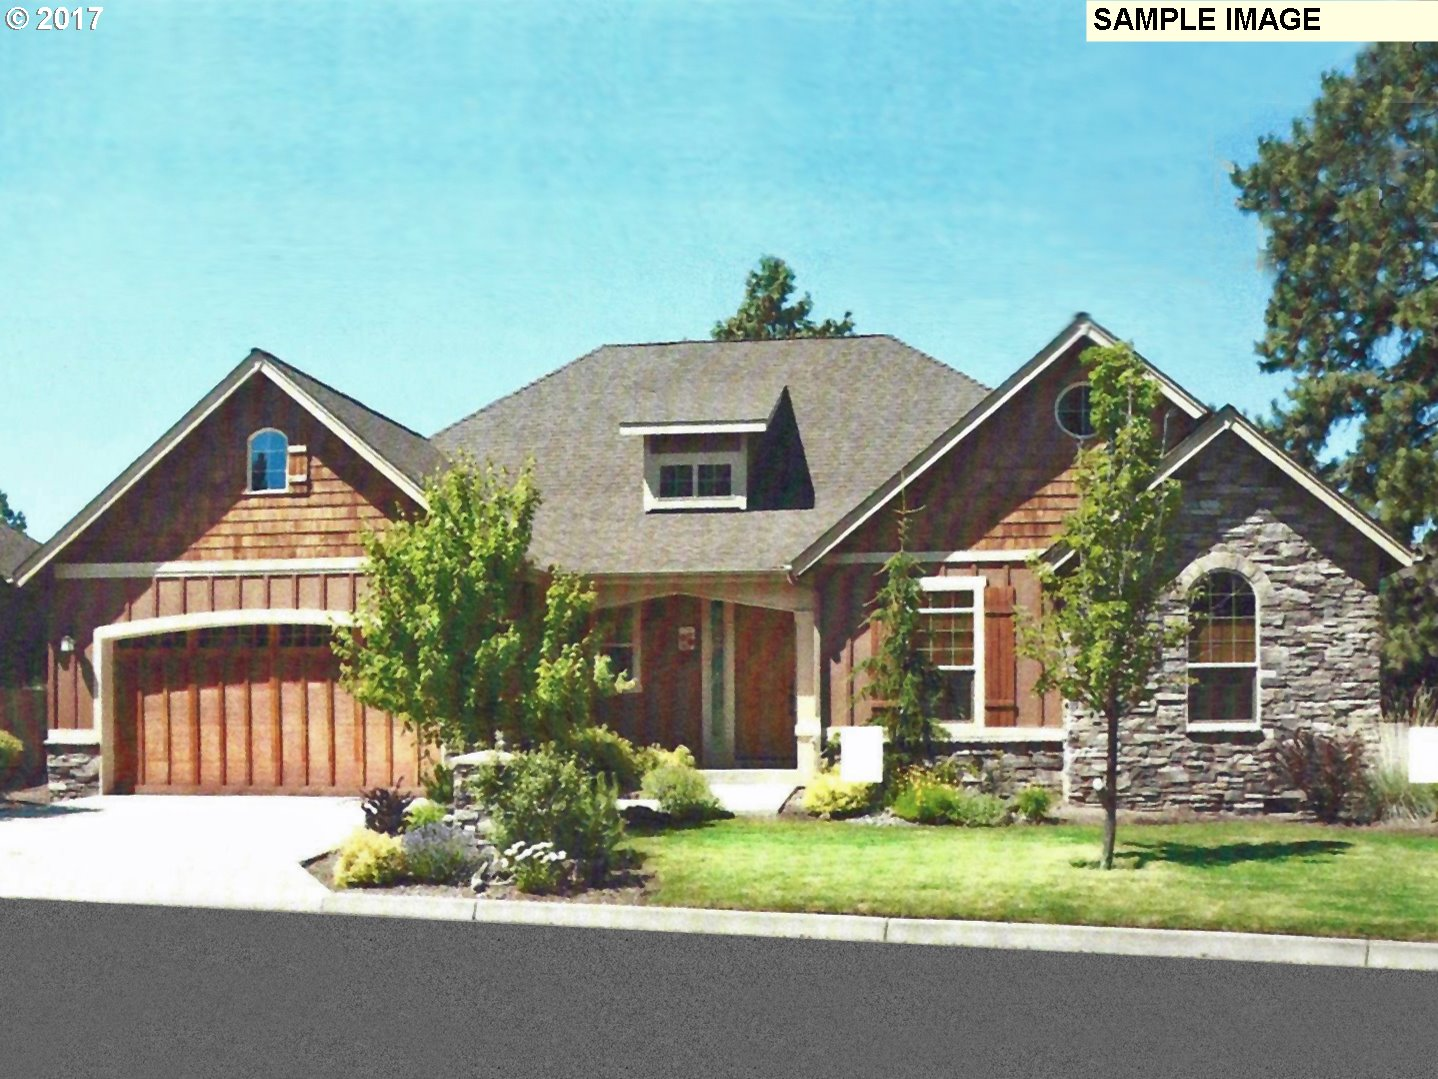 ROYAL ST GEORGES DR 48, Florence, OR 97439